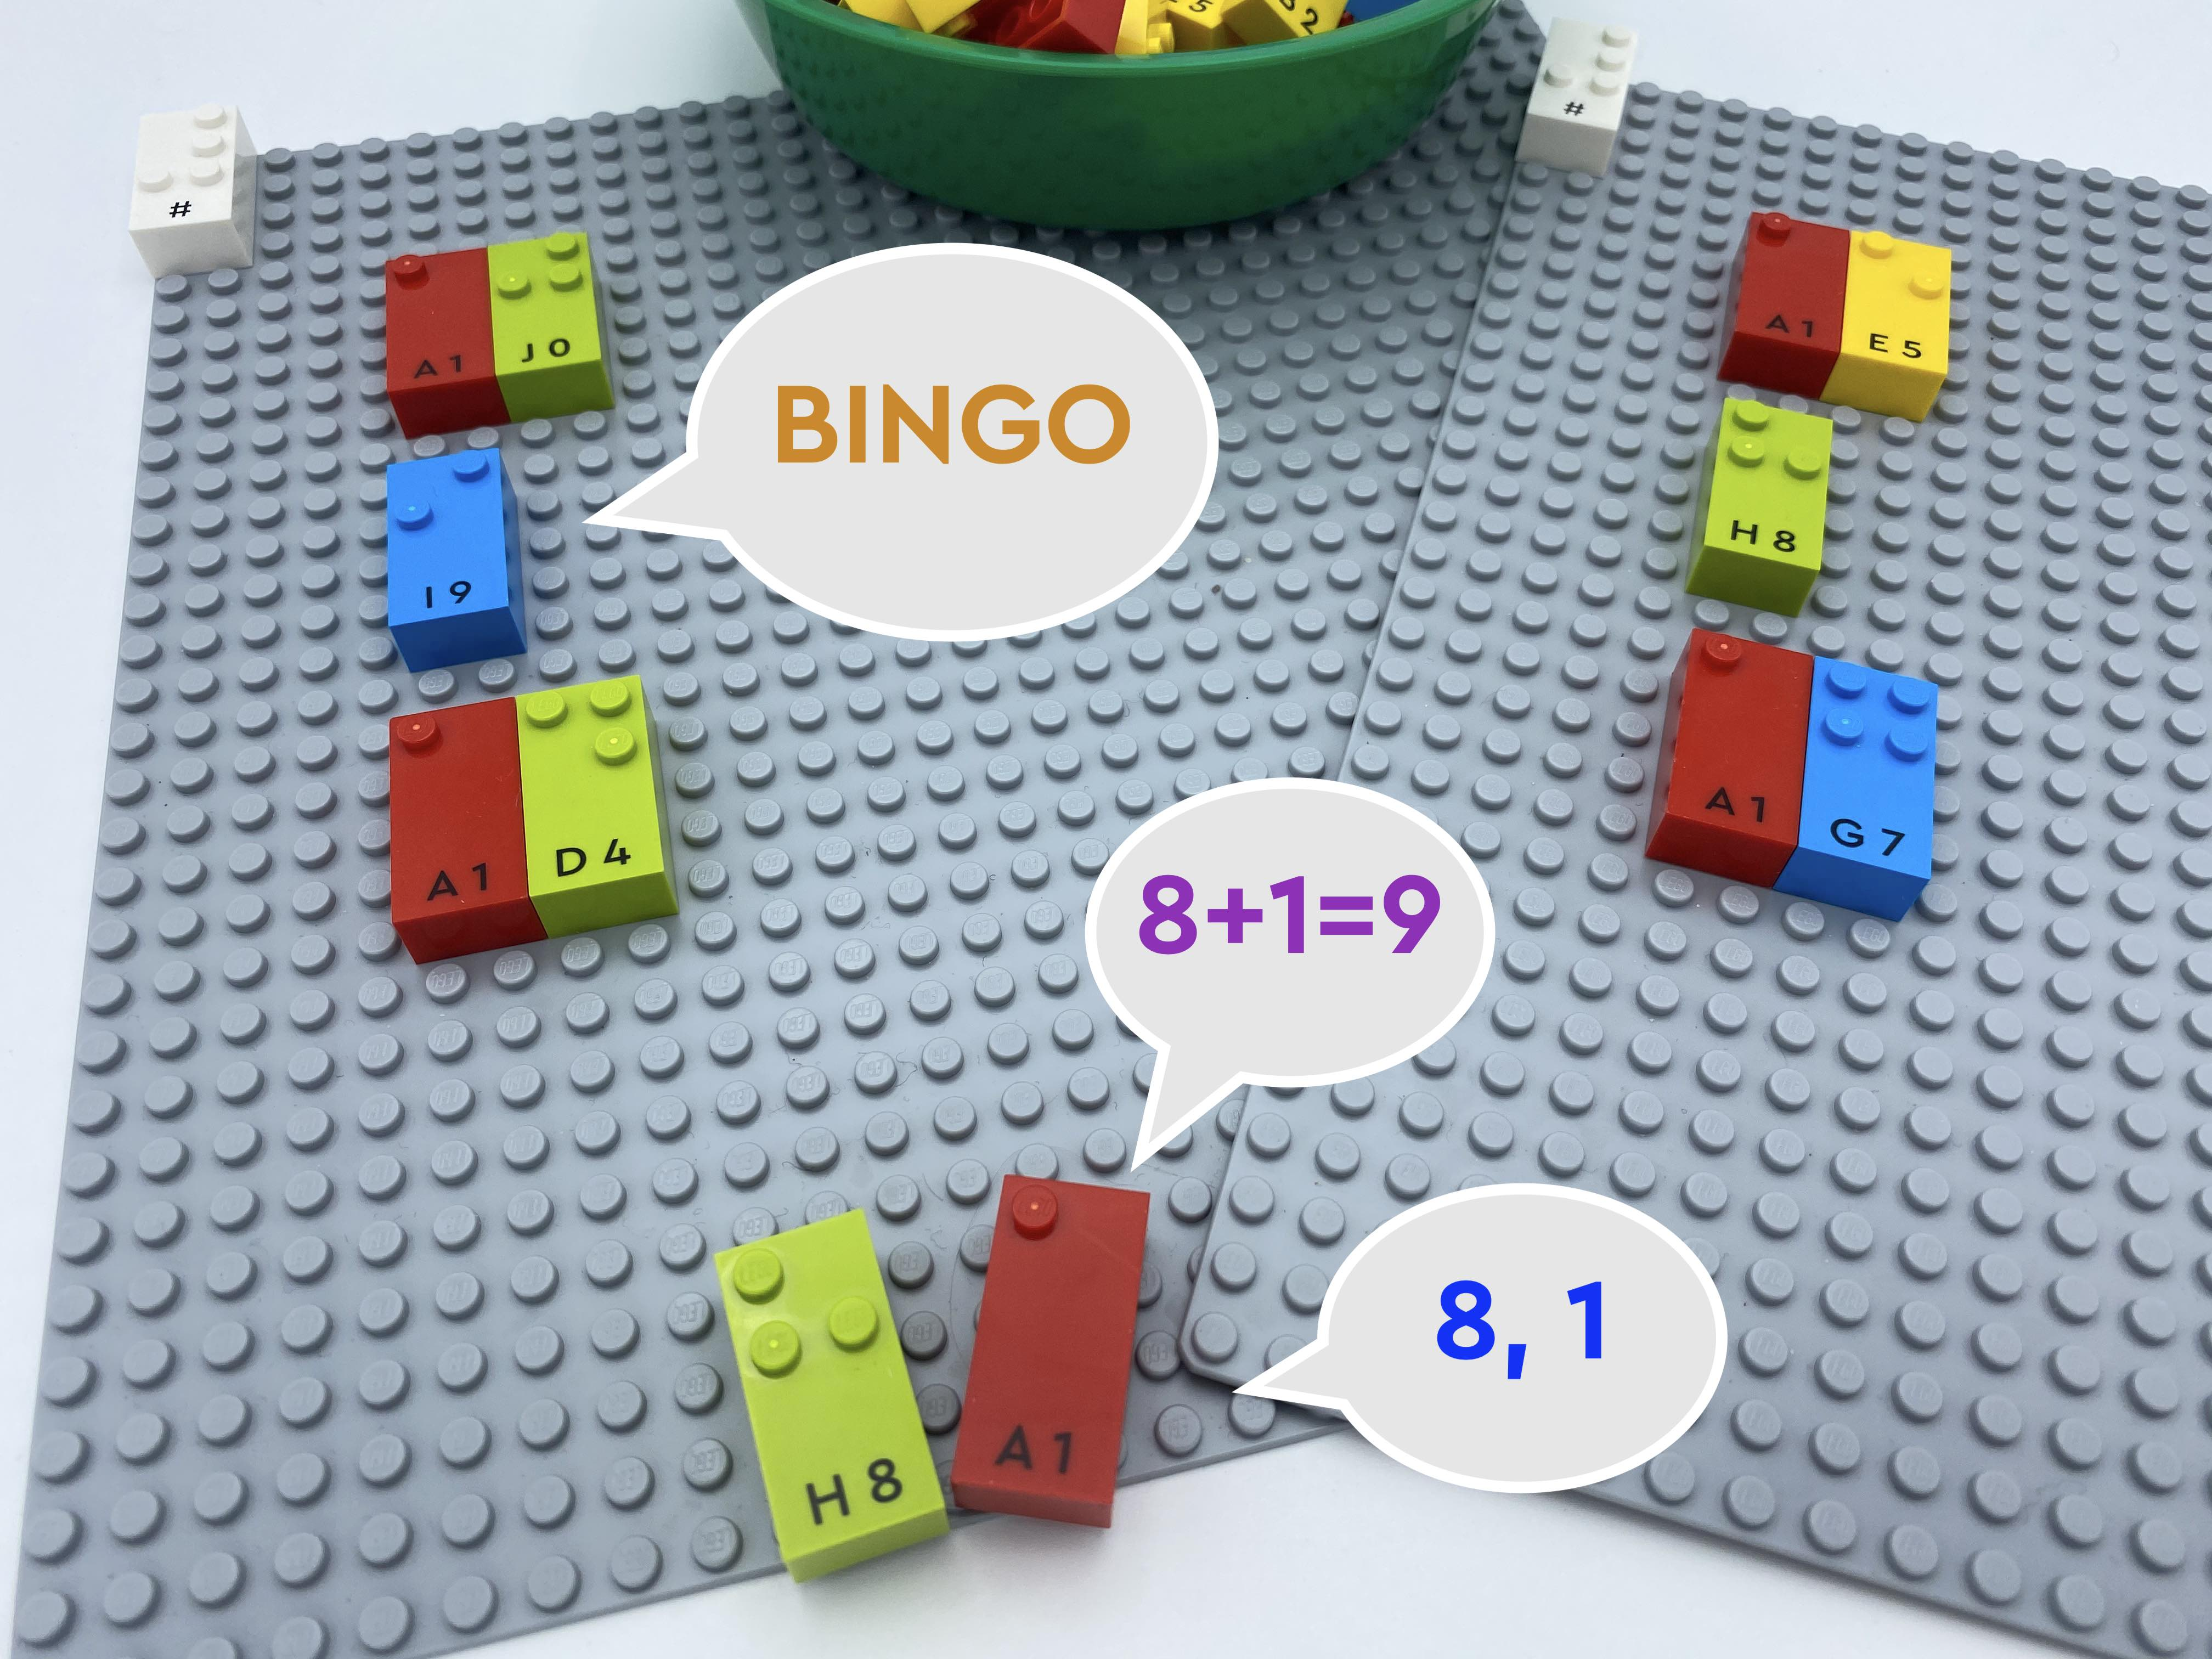 Number bricks 8 and 1. One bubble speech says 8, 1,  another says 8+1 =9, a third one says BINGO